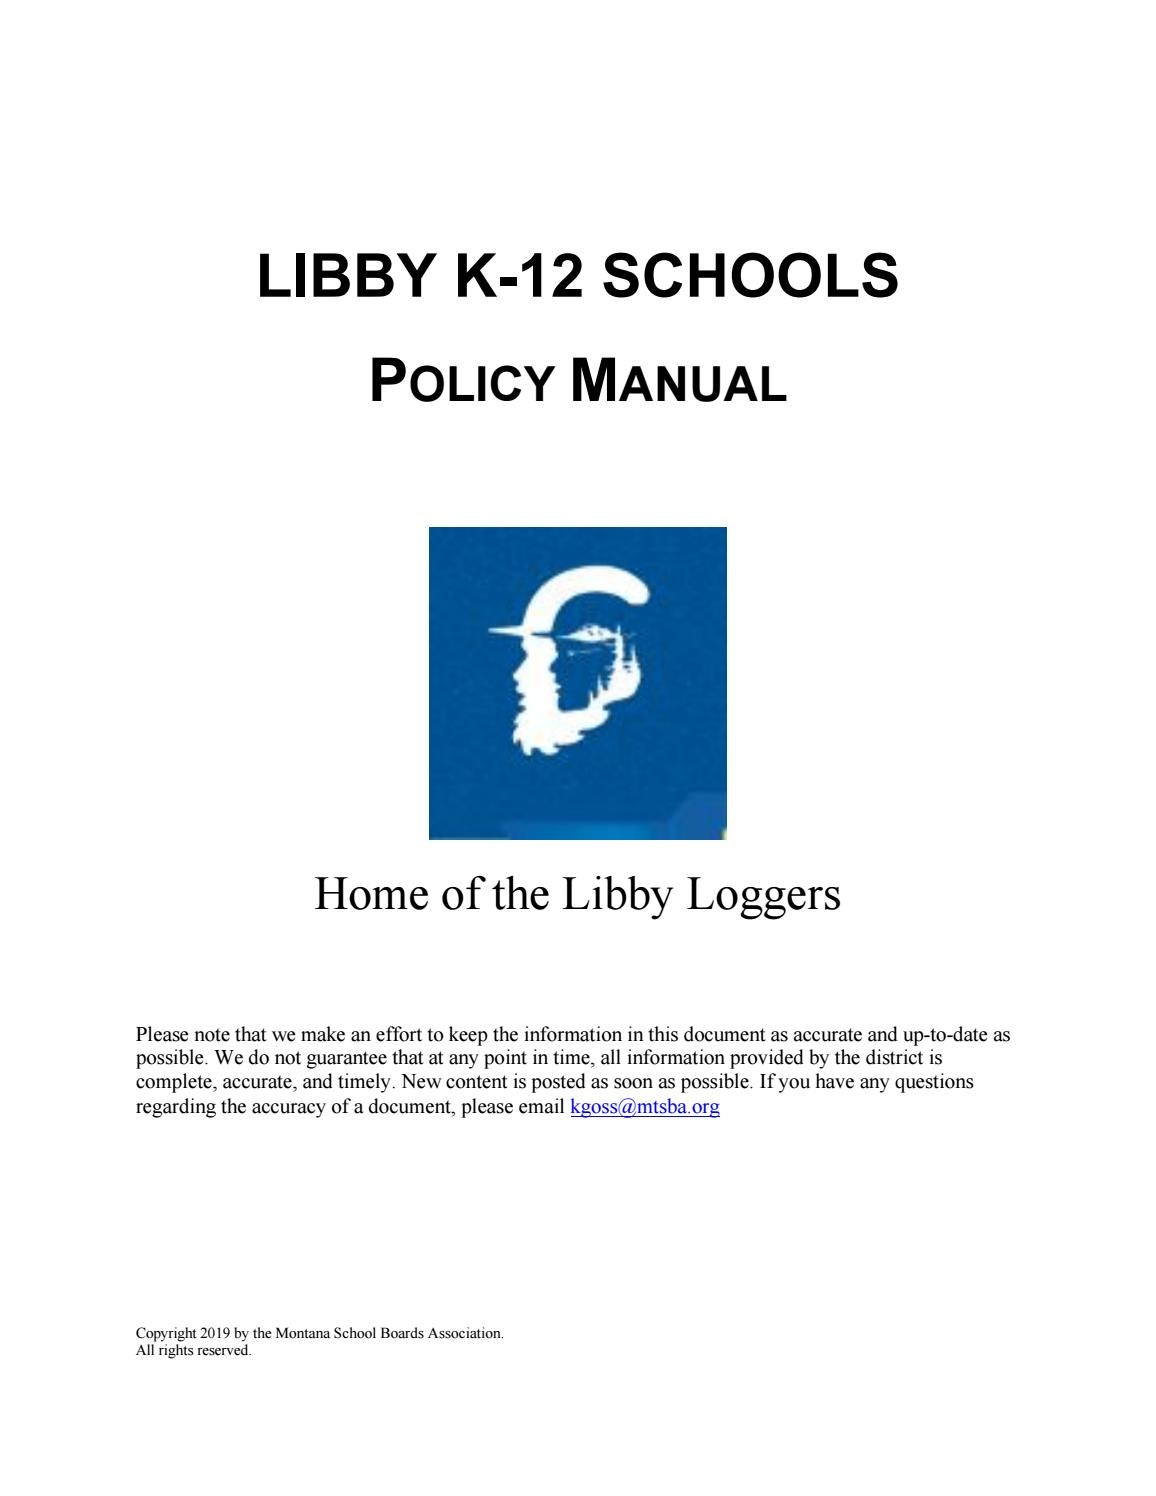 Libby K 12 Schools Policy Manual by Montana School Boards